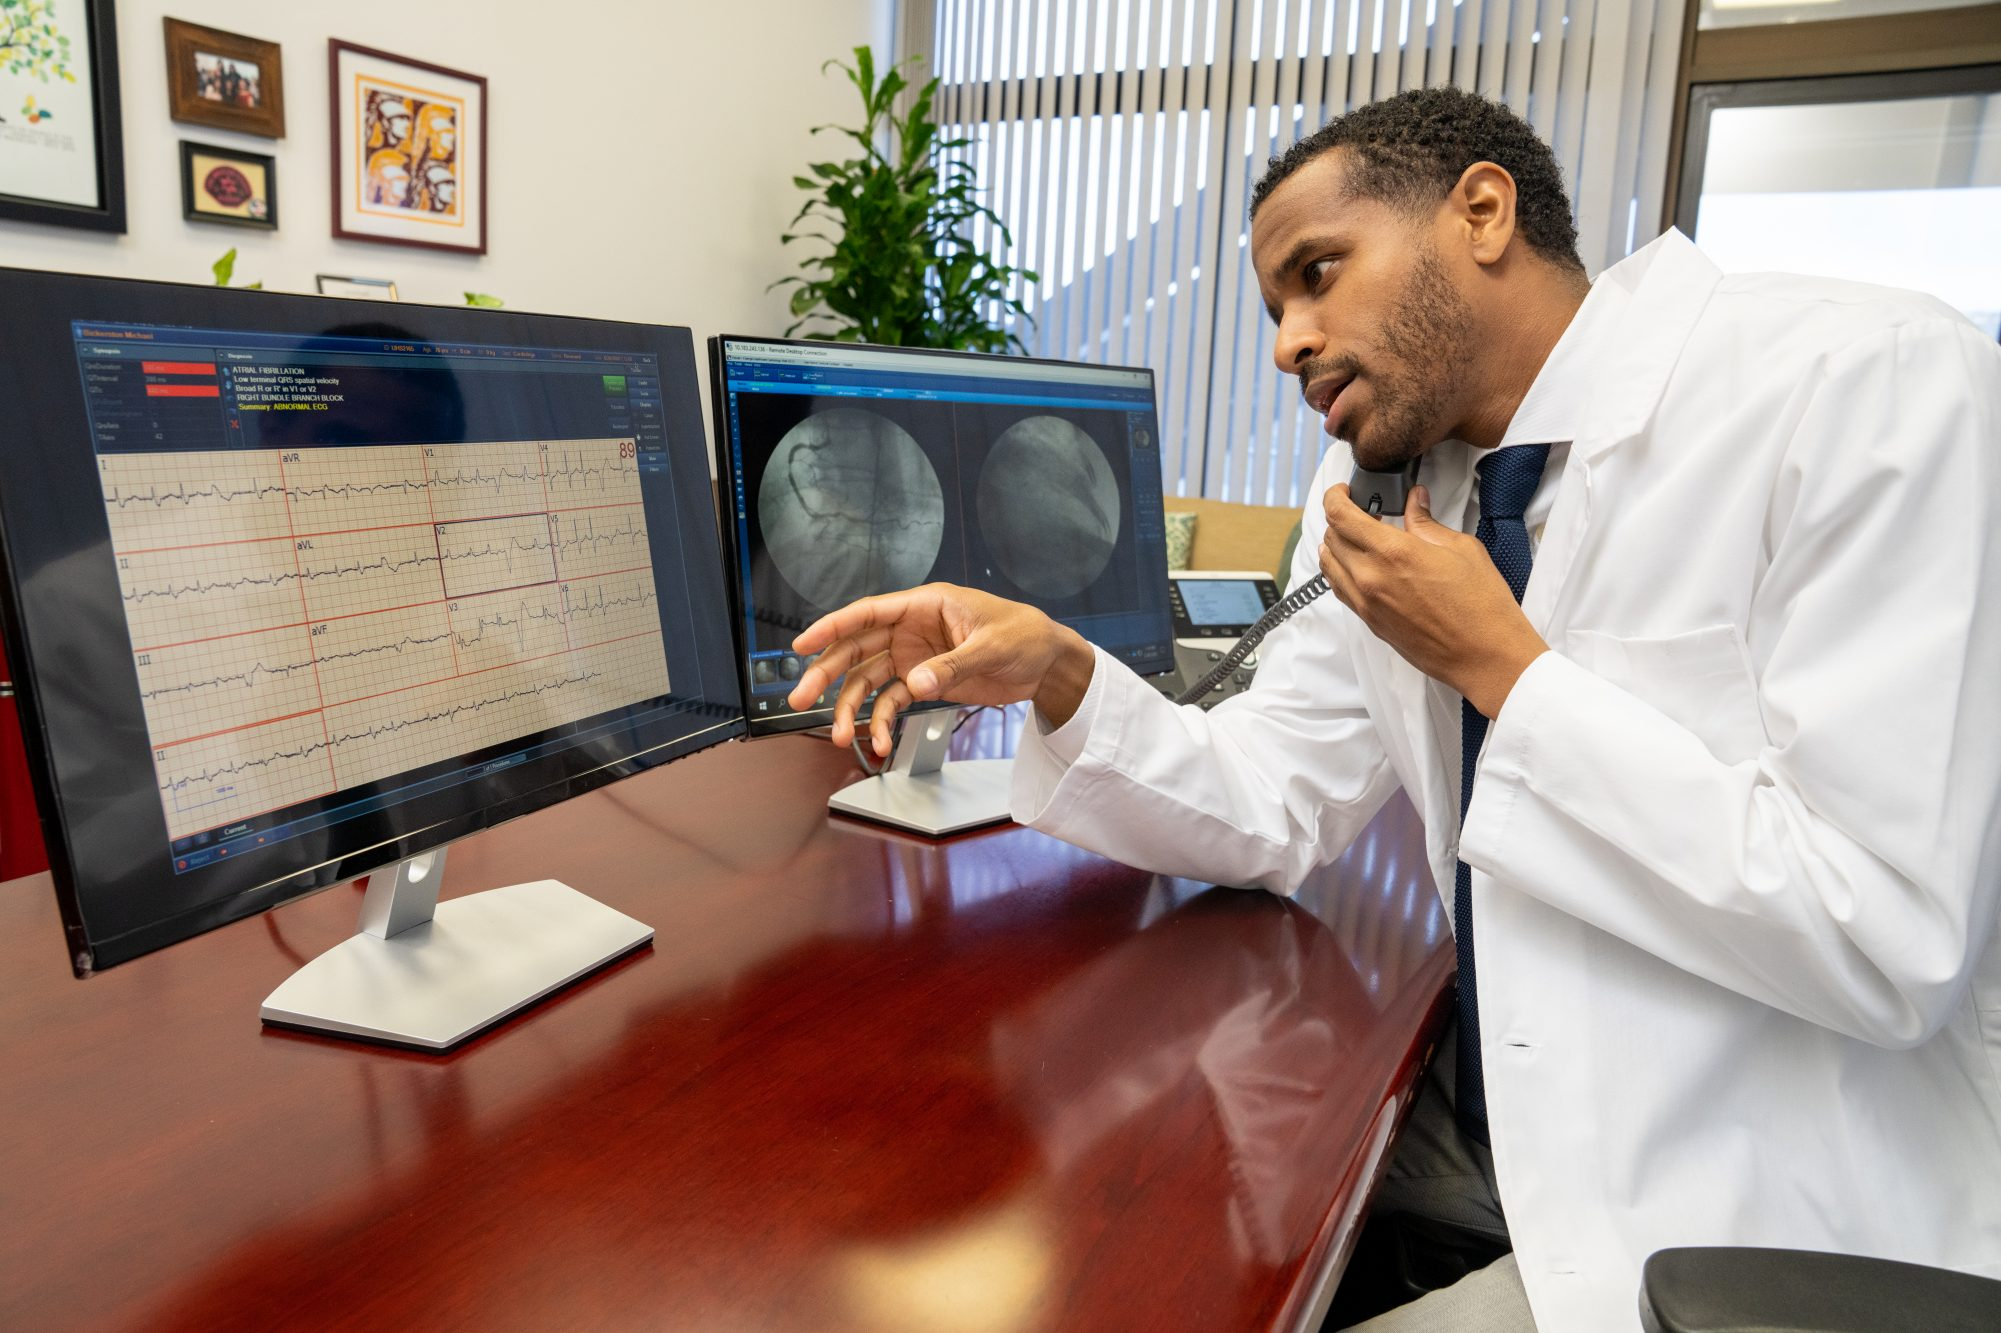 Cardiologist analyzing information on monitor while on phone